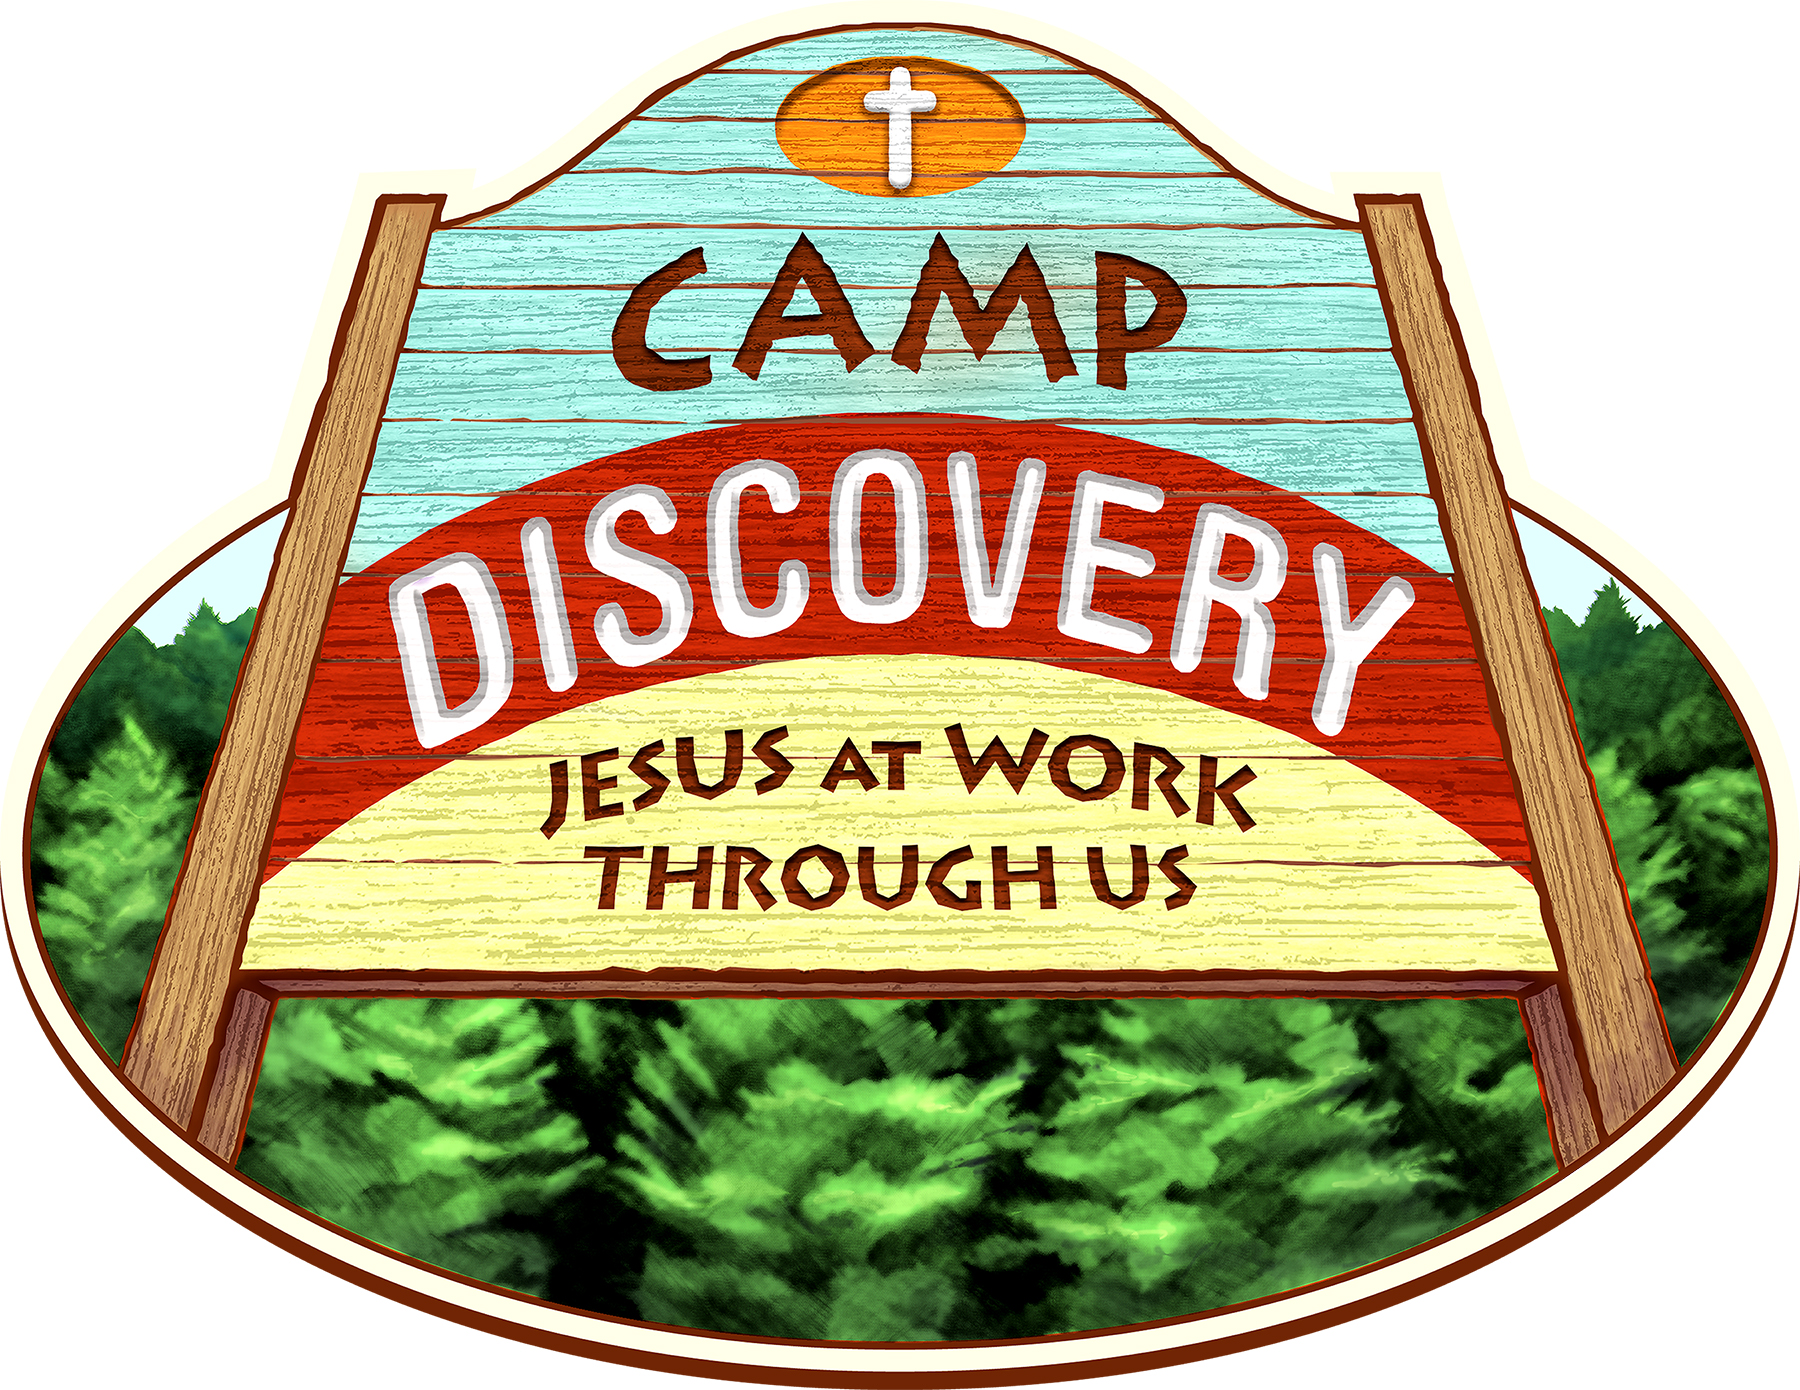 camp-discovery-logo-vbs2015-6in